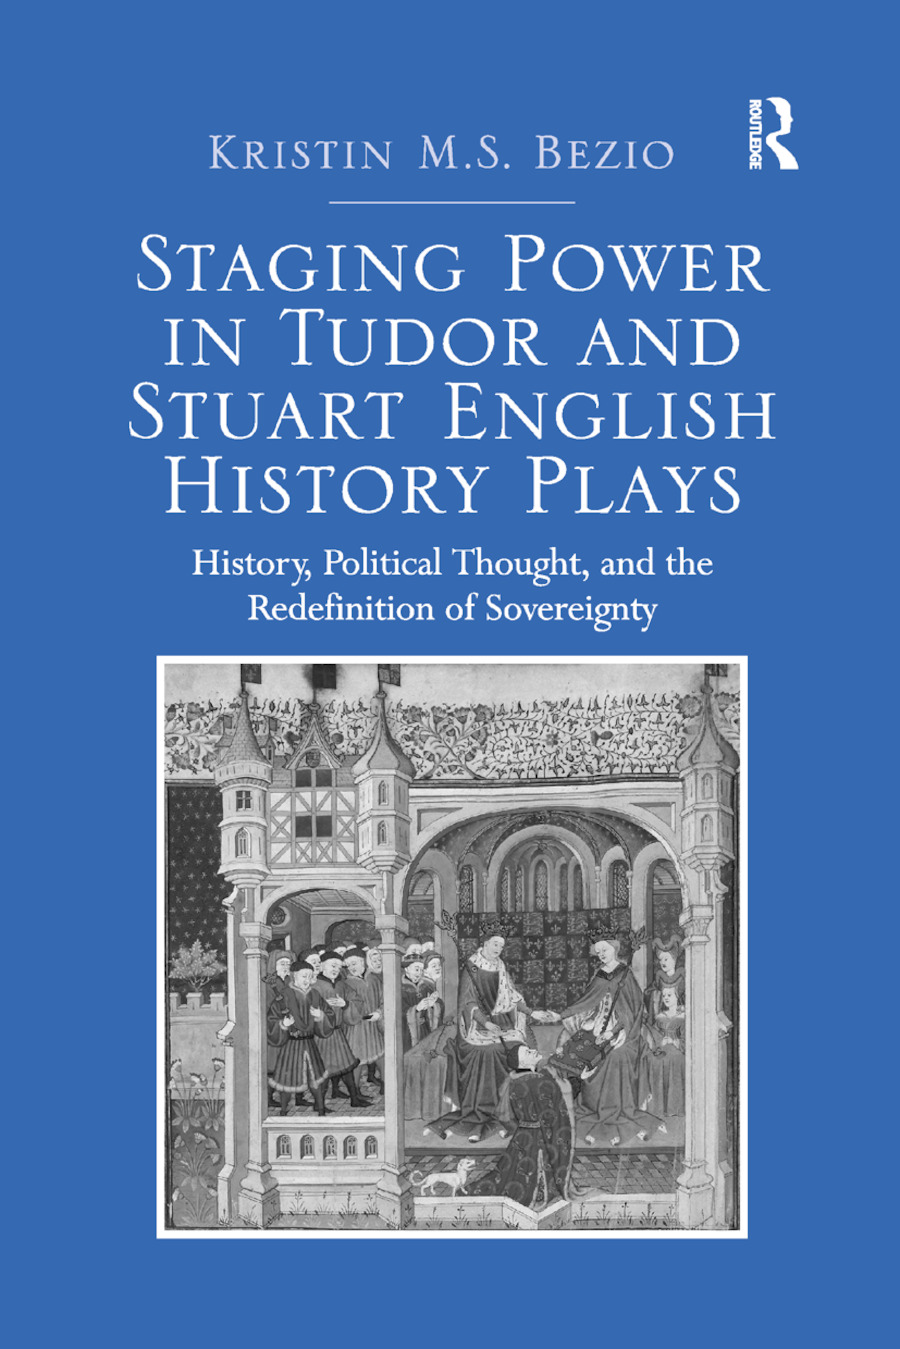 Staging Power in Tudor and Stuart English History Plays: History, Political Thought, and the Redefinition of Sovereignty book cover